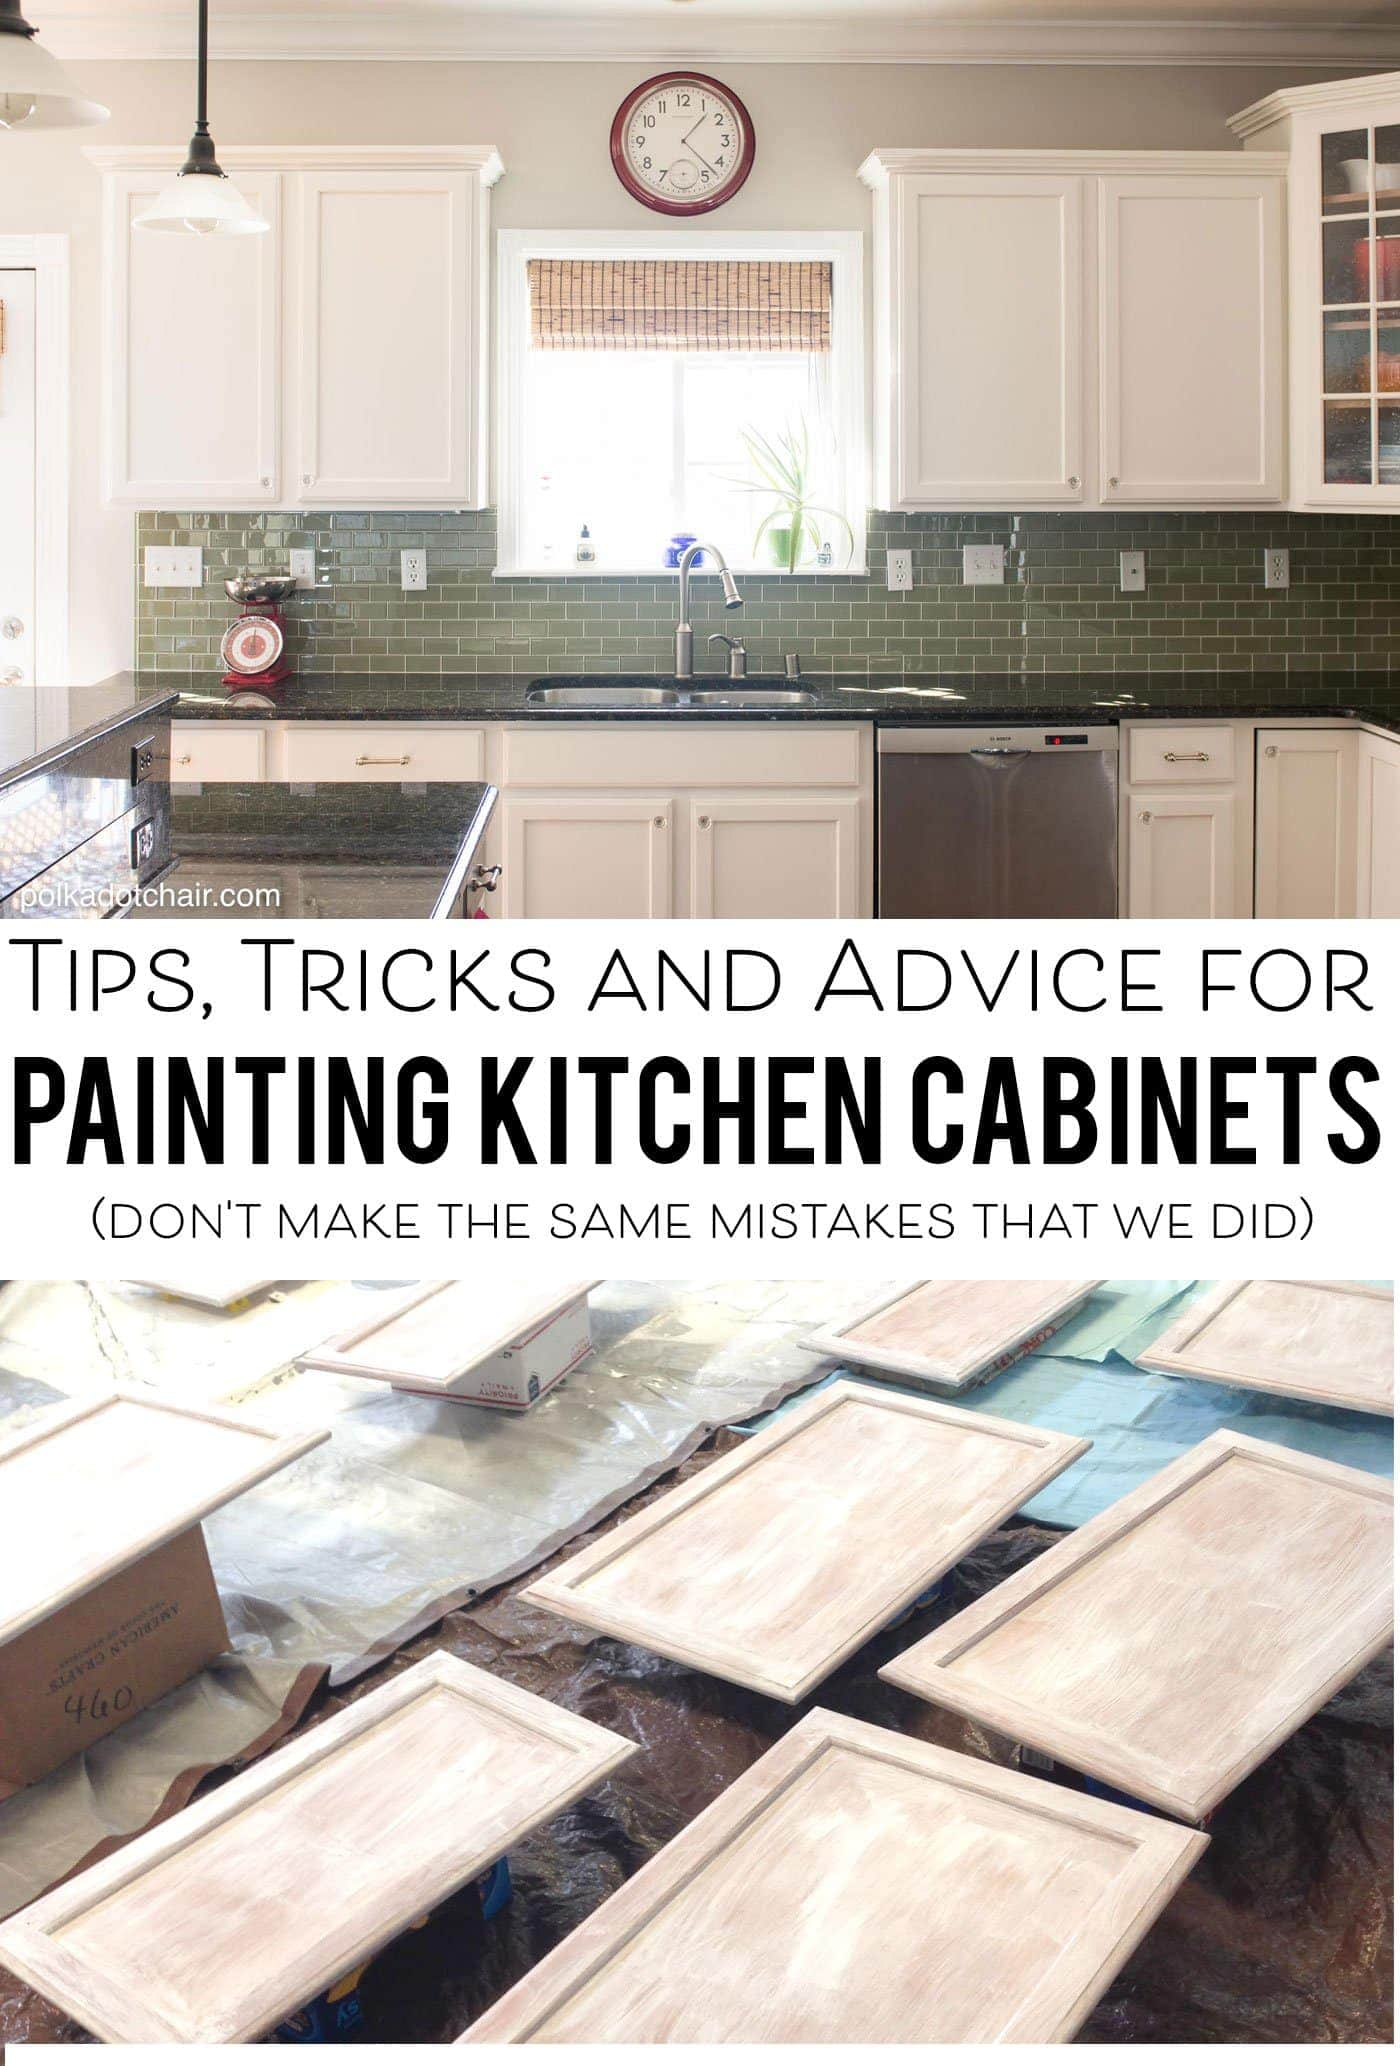 tips for painting kitchen cabinets painted kitchen cabinets Tips and Tricks and what NOT to do when painting your kitchen cabinets